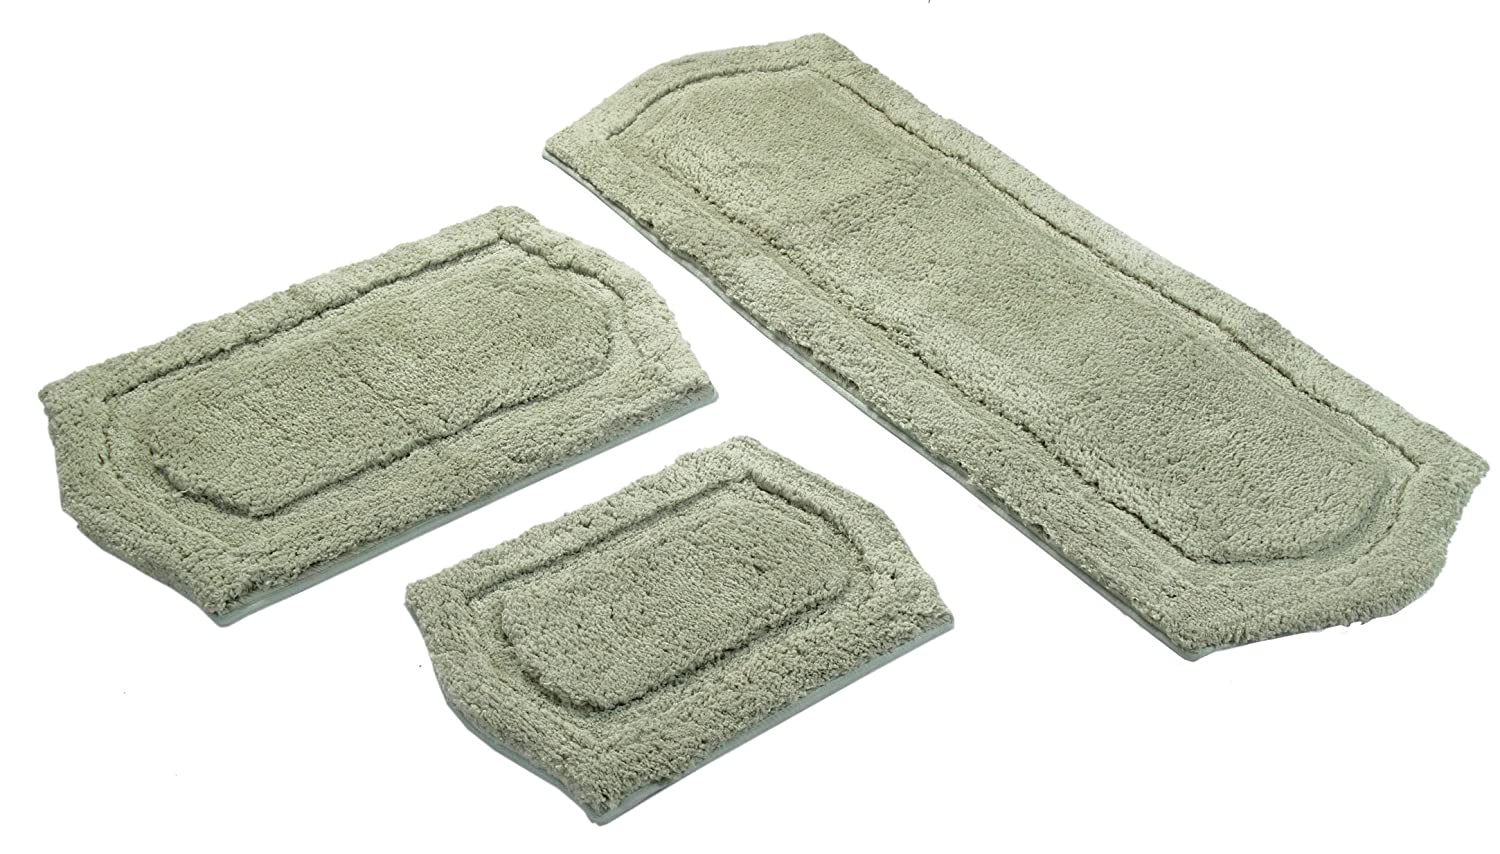 Memory Foam Bathroom Set. Amazon Com Chesapeake Merchandising 3 Piece Paradise Memory Foam Bath Rug Set Sage Home Kitchen